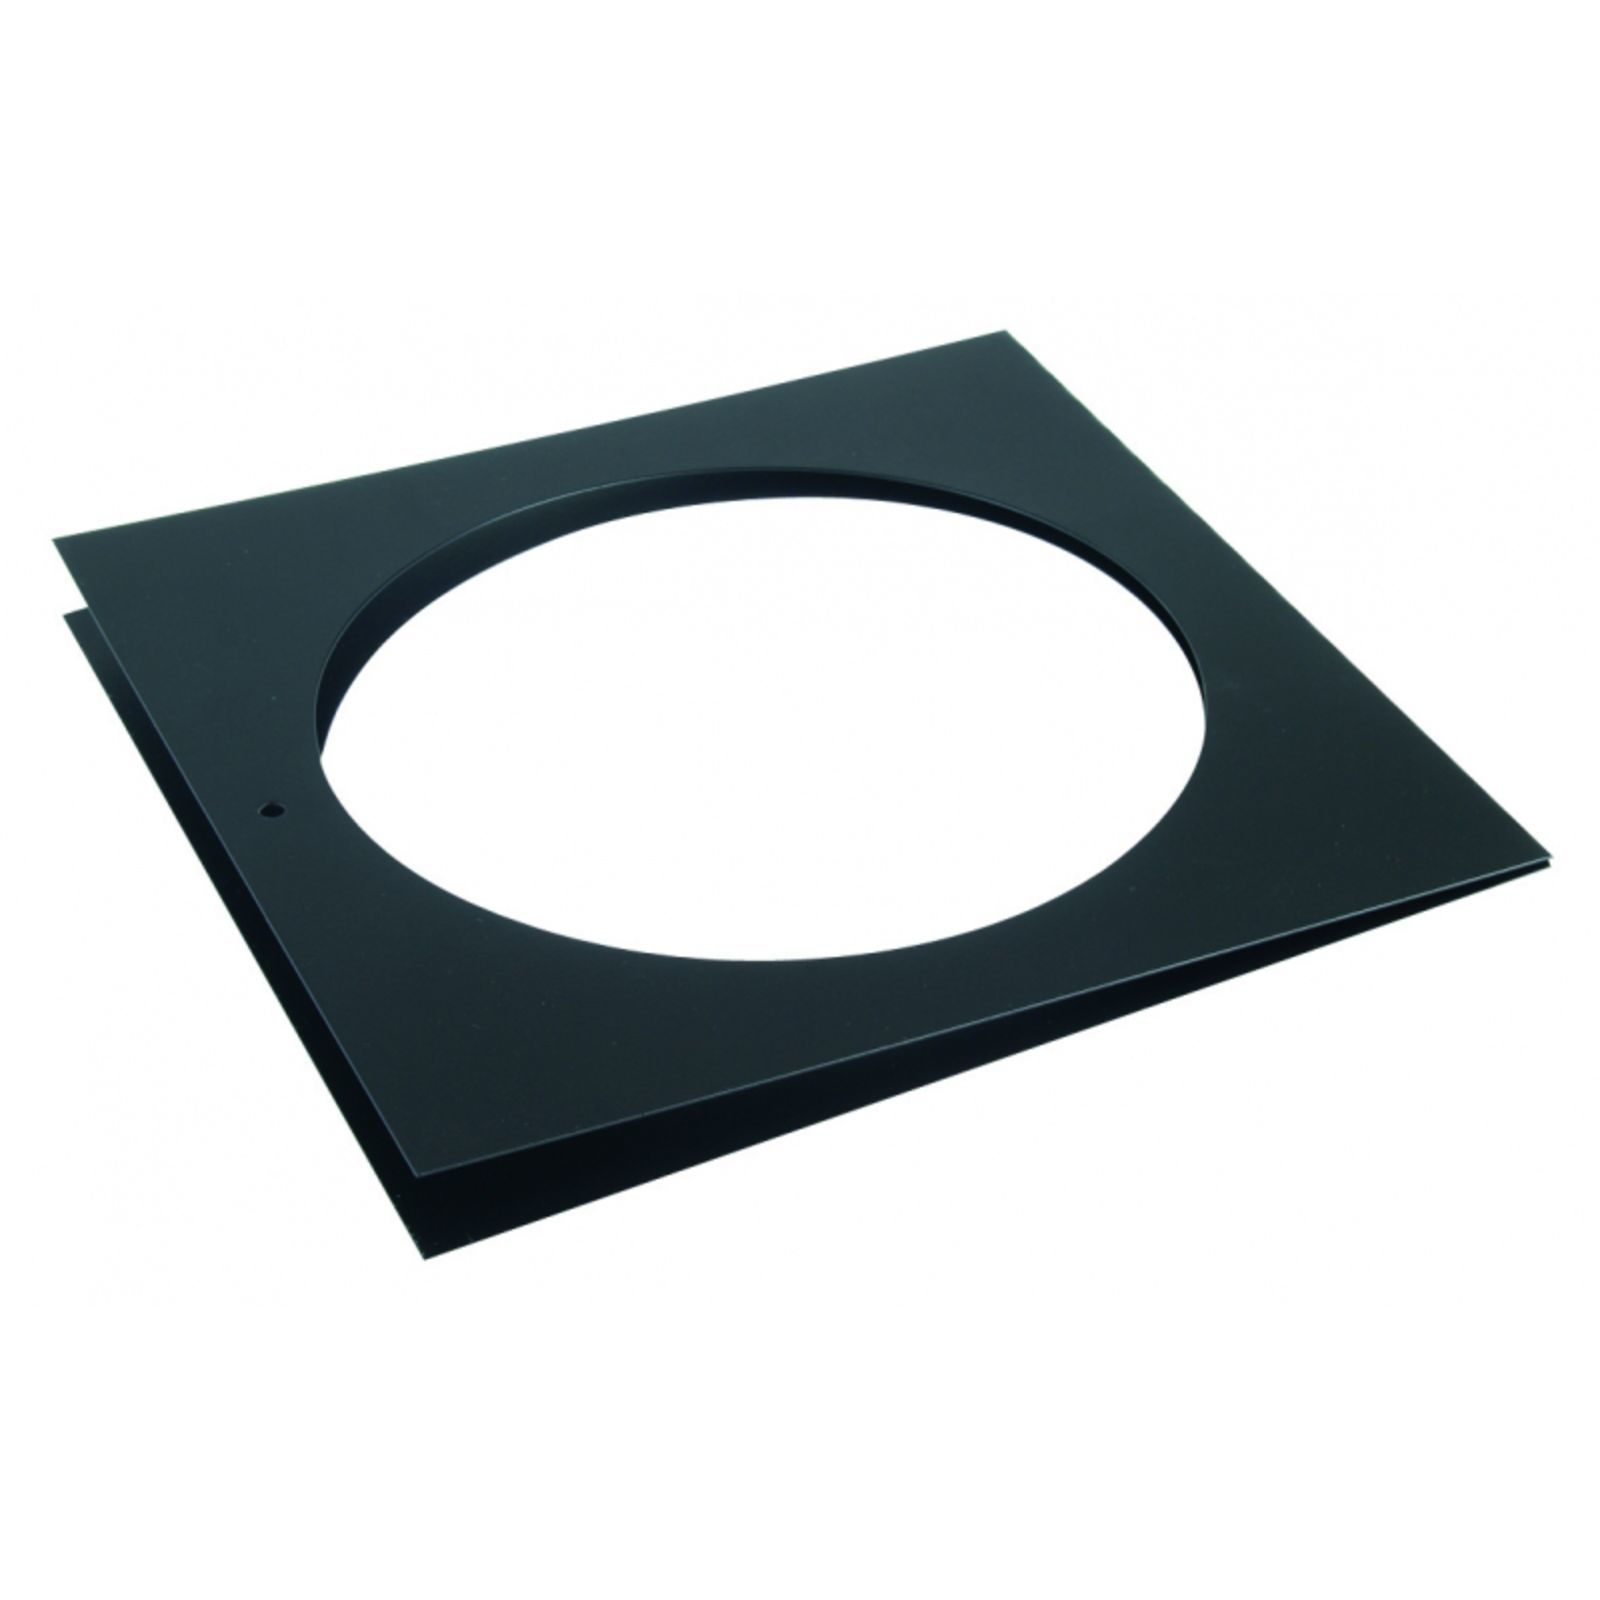 lightmaXX filter frame PAR 56 black long, square Produktbillede